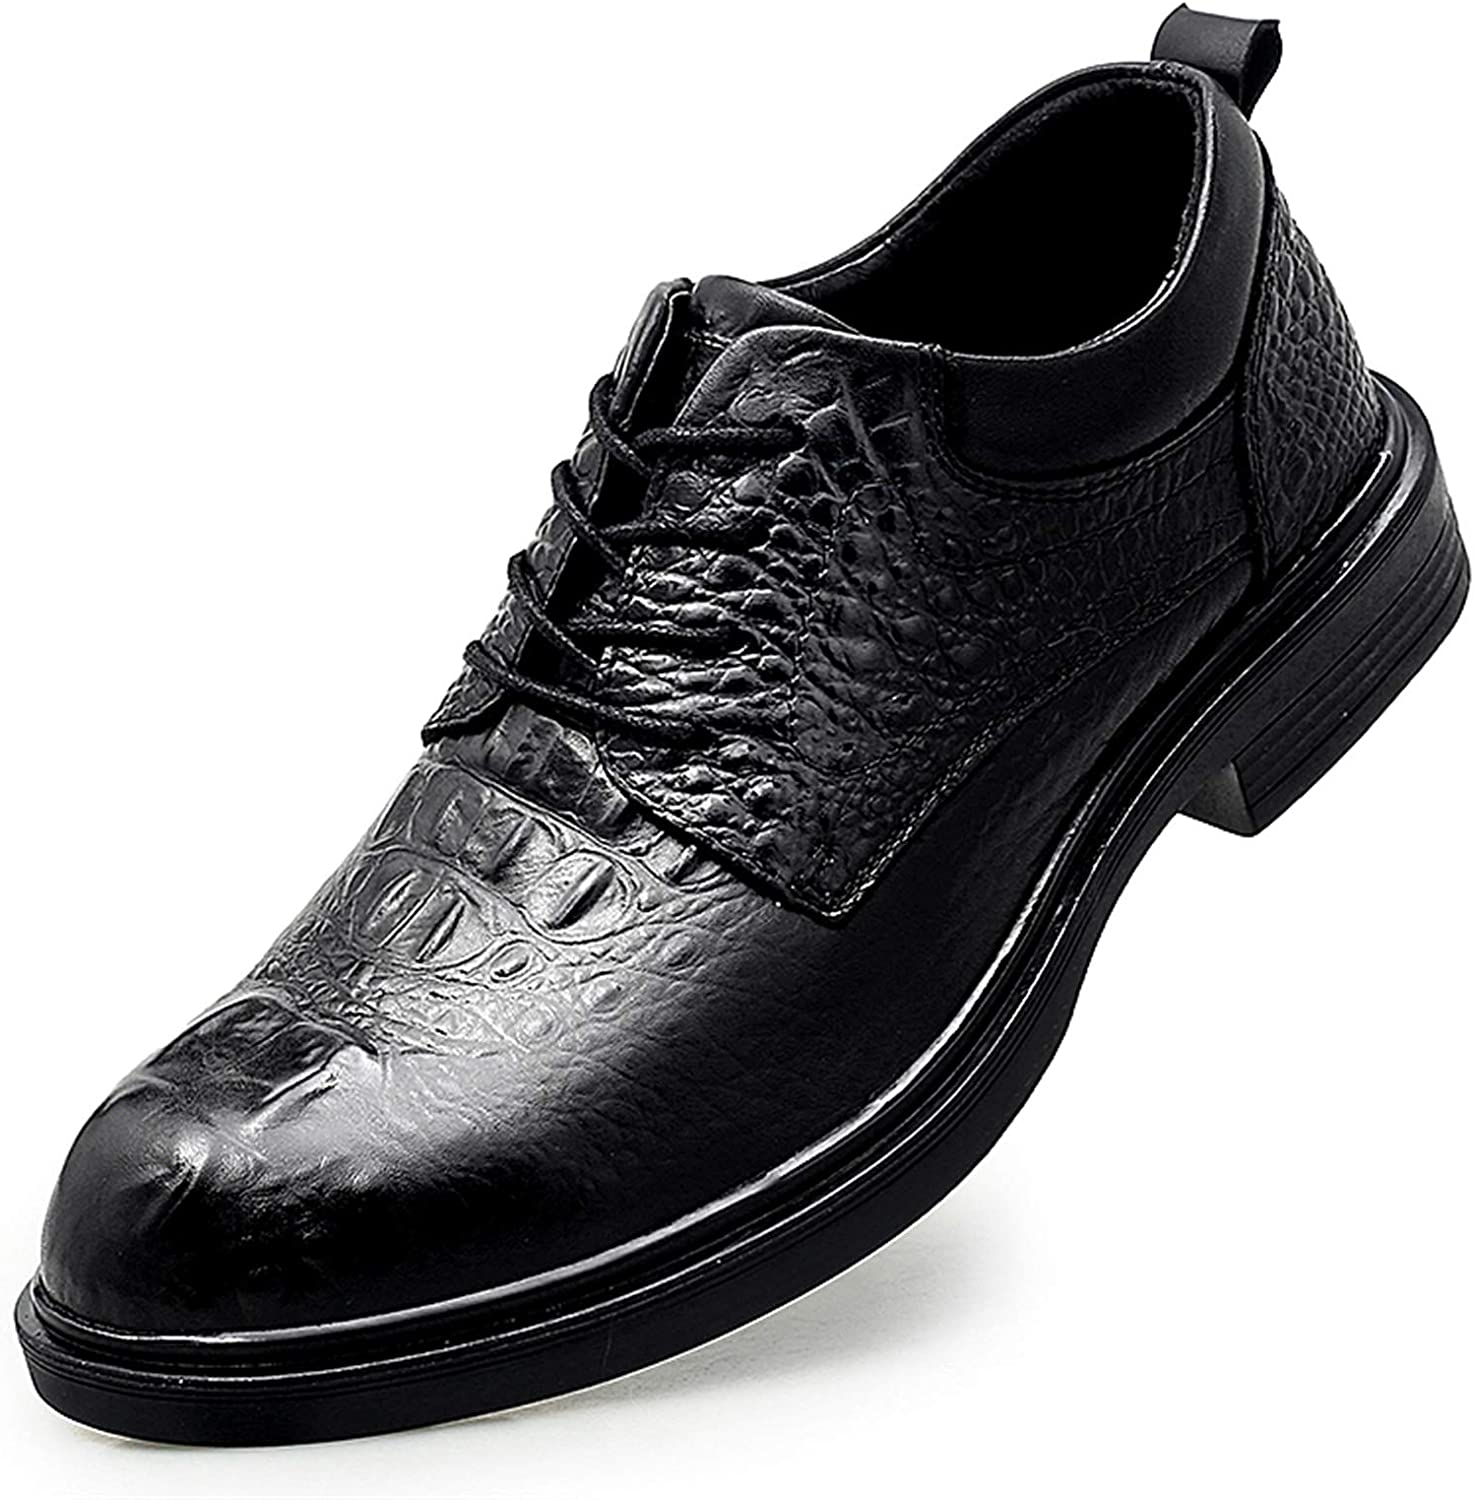 Popular popular Charlotte Mall Men's Oxford Shoes Business Leather Lace Crocodile Fau Embossed